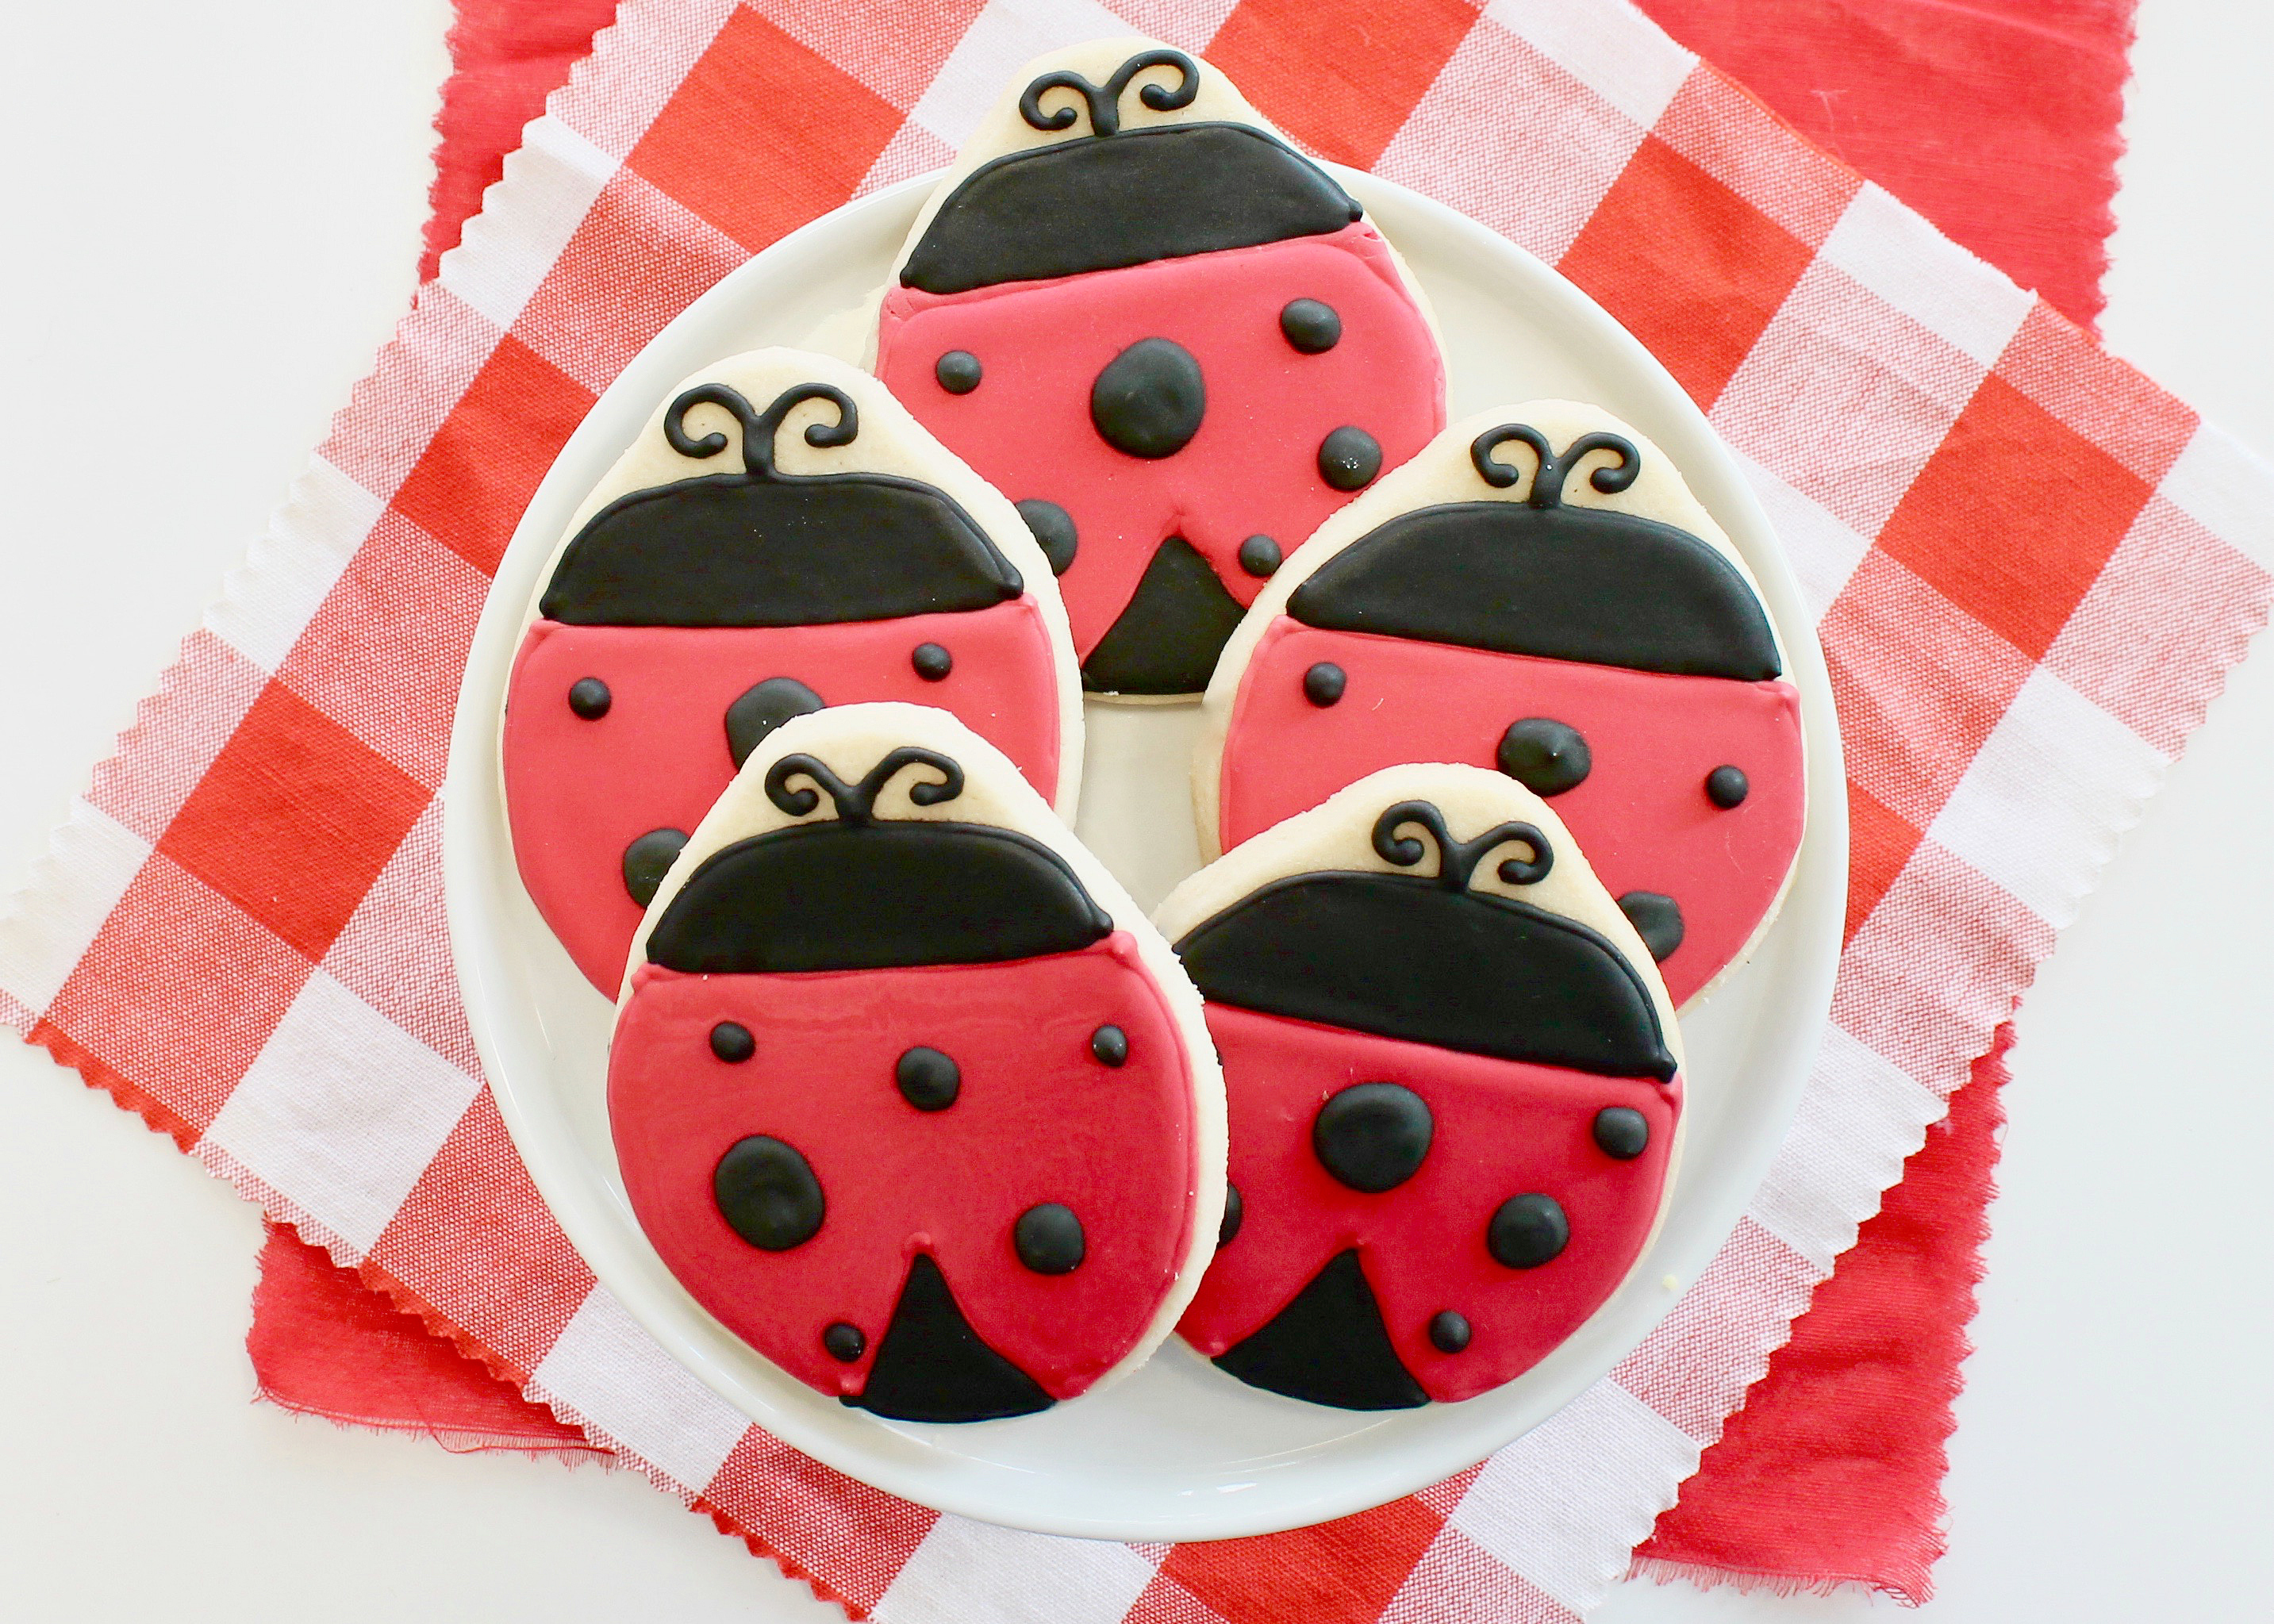 Ladybug Party | Little Lovebug Party | First Birthday Party | Girls Party Idea | Kid's Birthday | Dessert Table Ideas